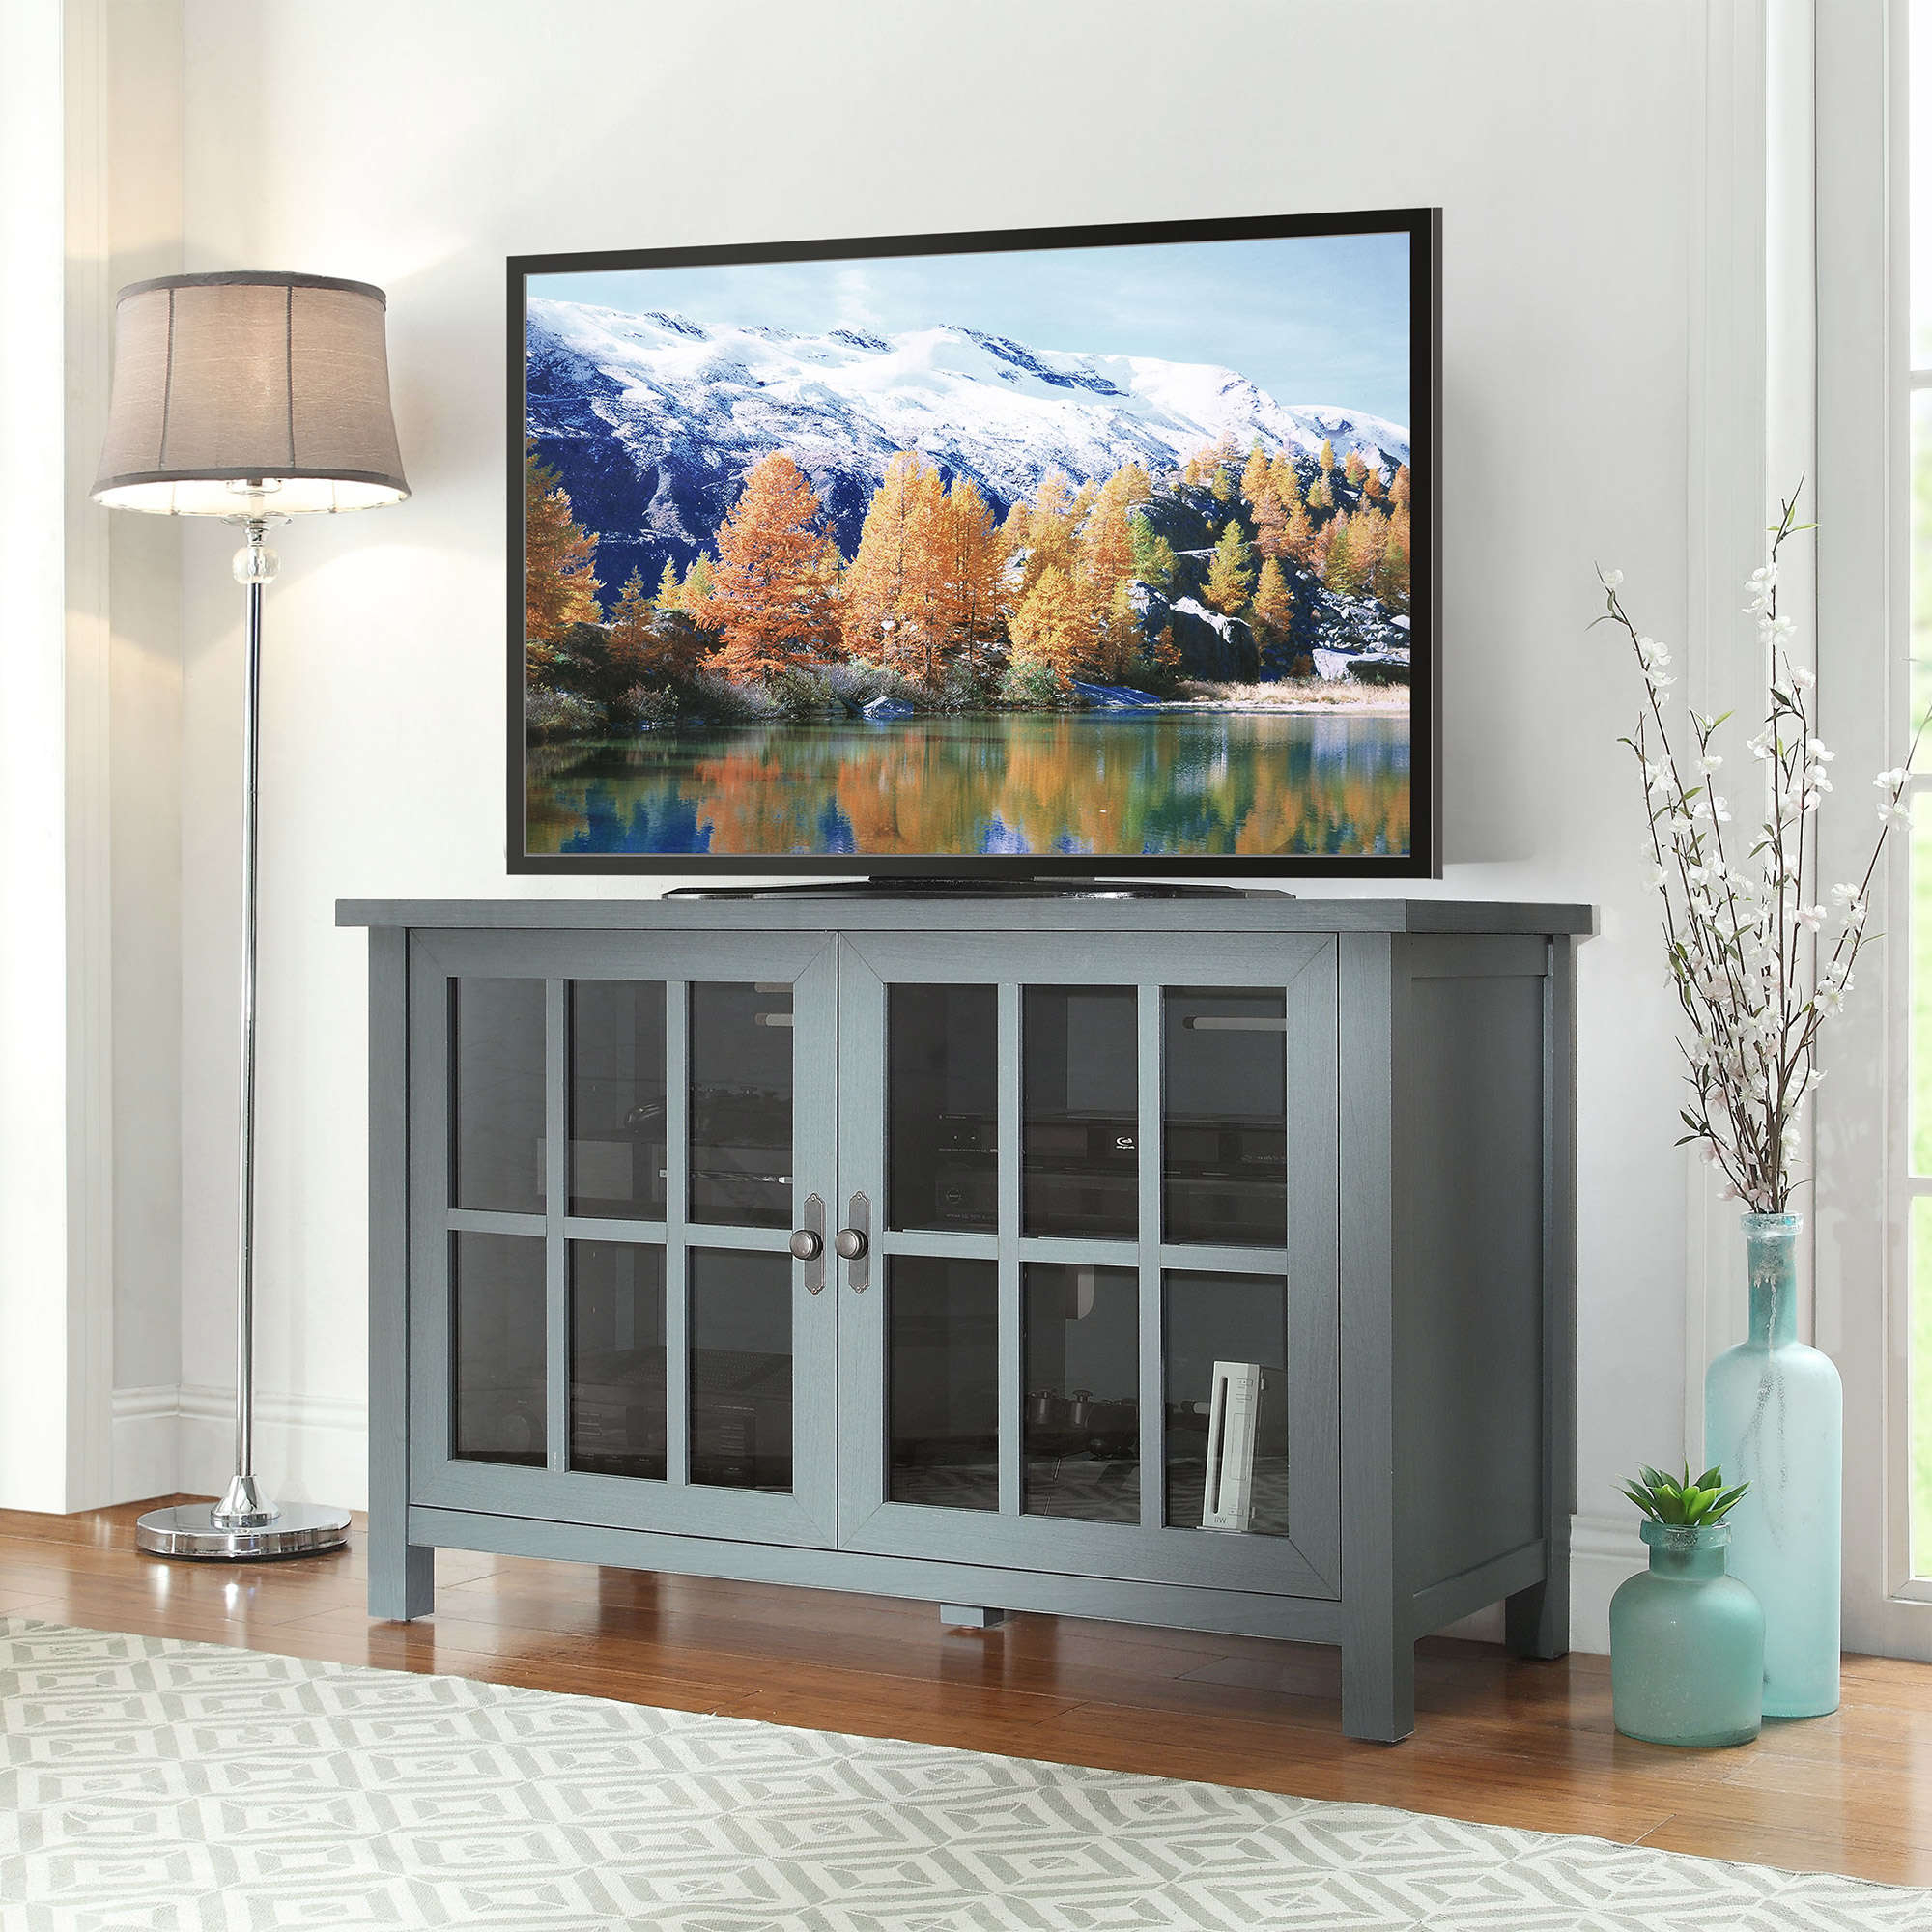 Well Liked Better Homes And Gardens Oxford Square Tv Console For Tvs Up To 55 Pertaining To Oxford 70 Inch Tv Stands (View 20 of 20)